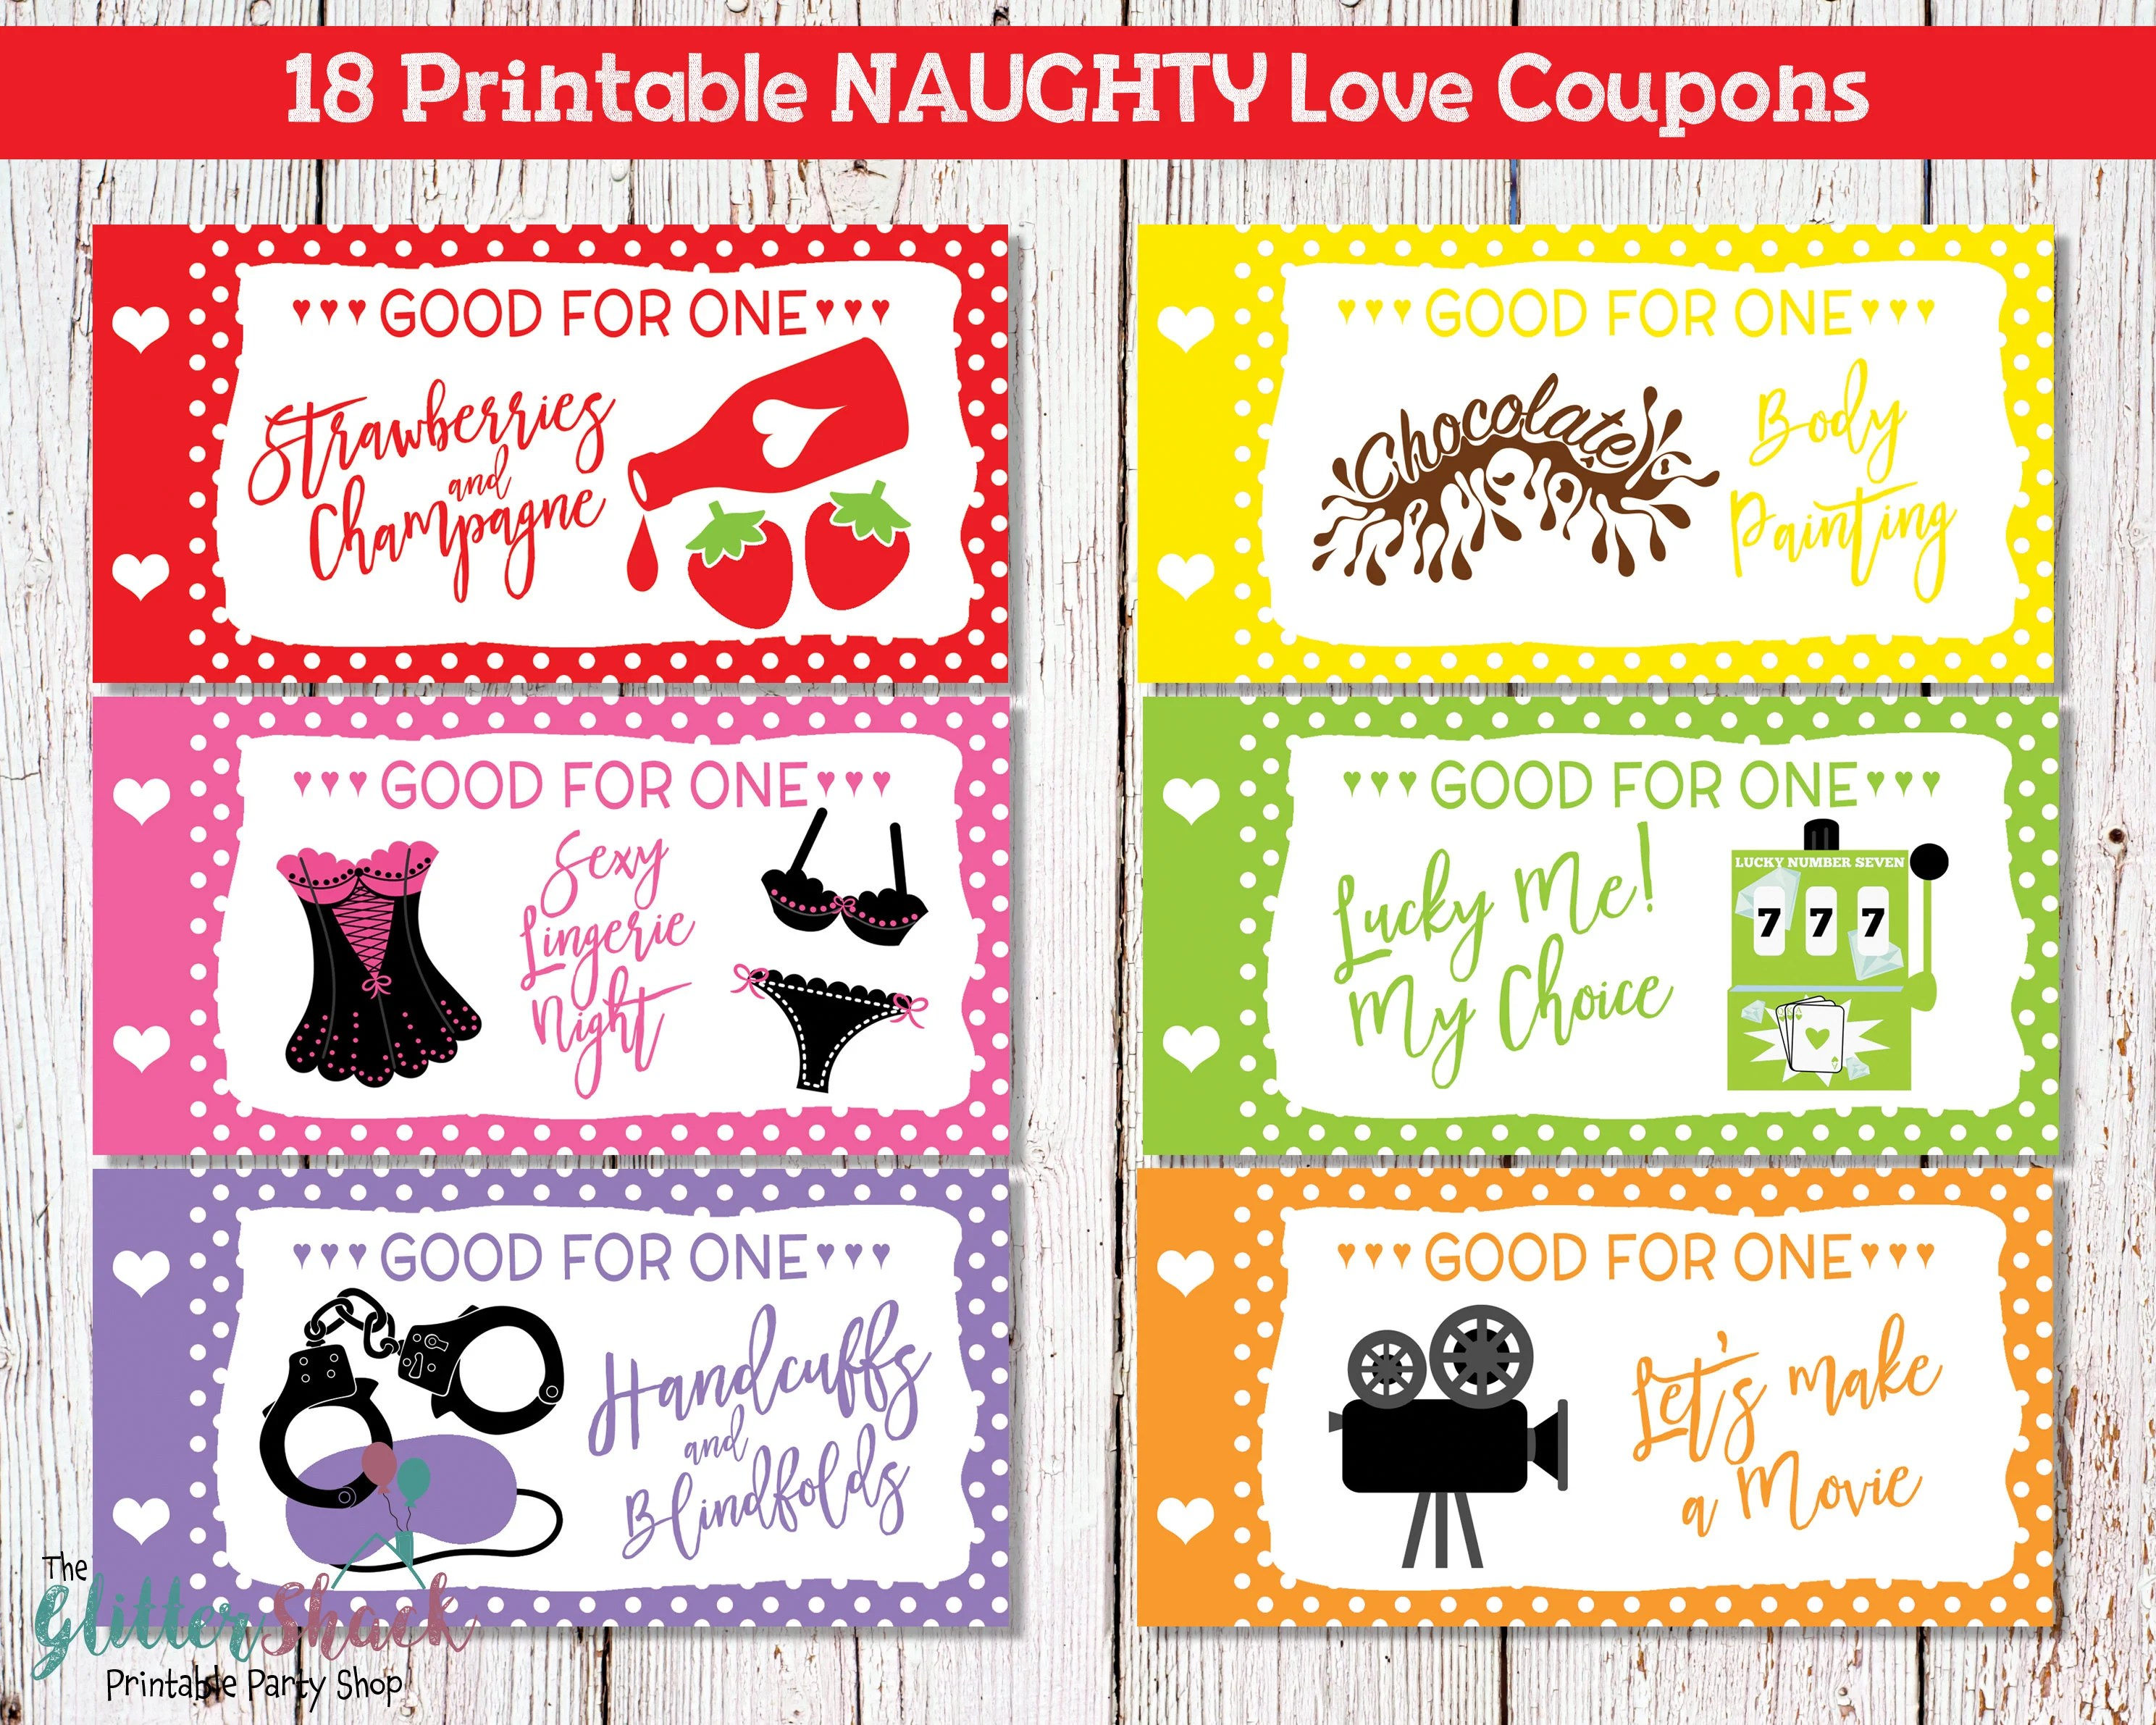 Printable Naughty Love Coupons For Men Husband Boyfriend Sexy Etsy